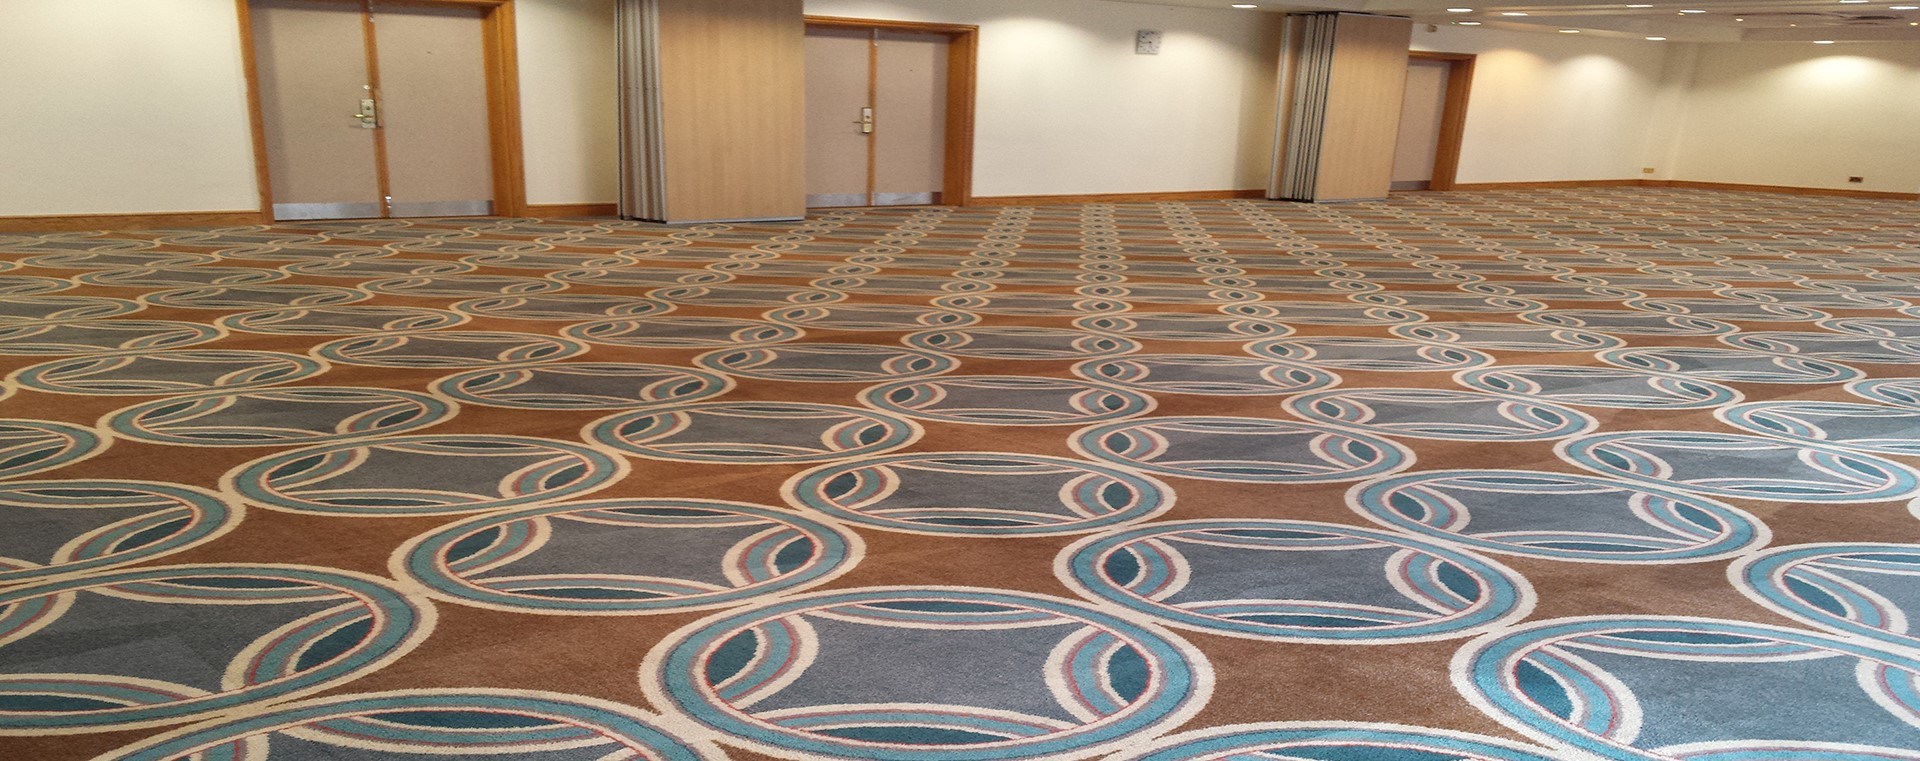 Carpet Cleaning At Its Finest